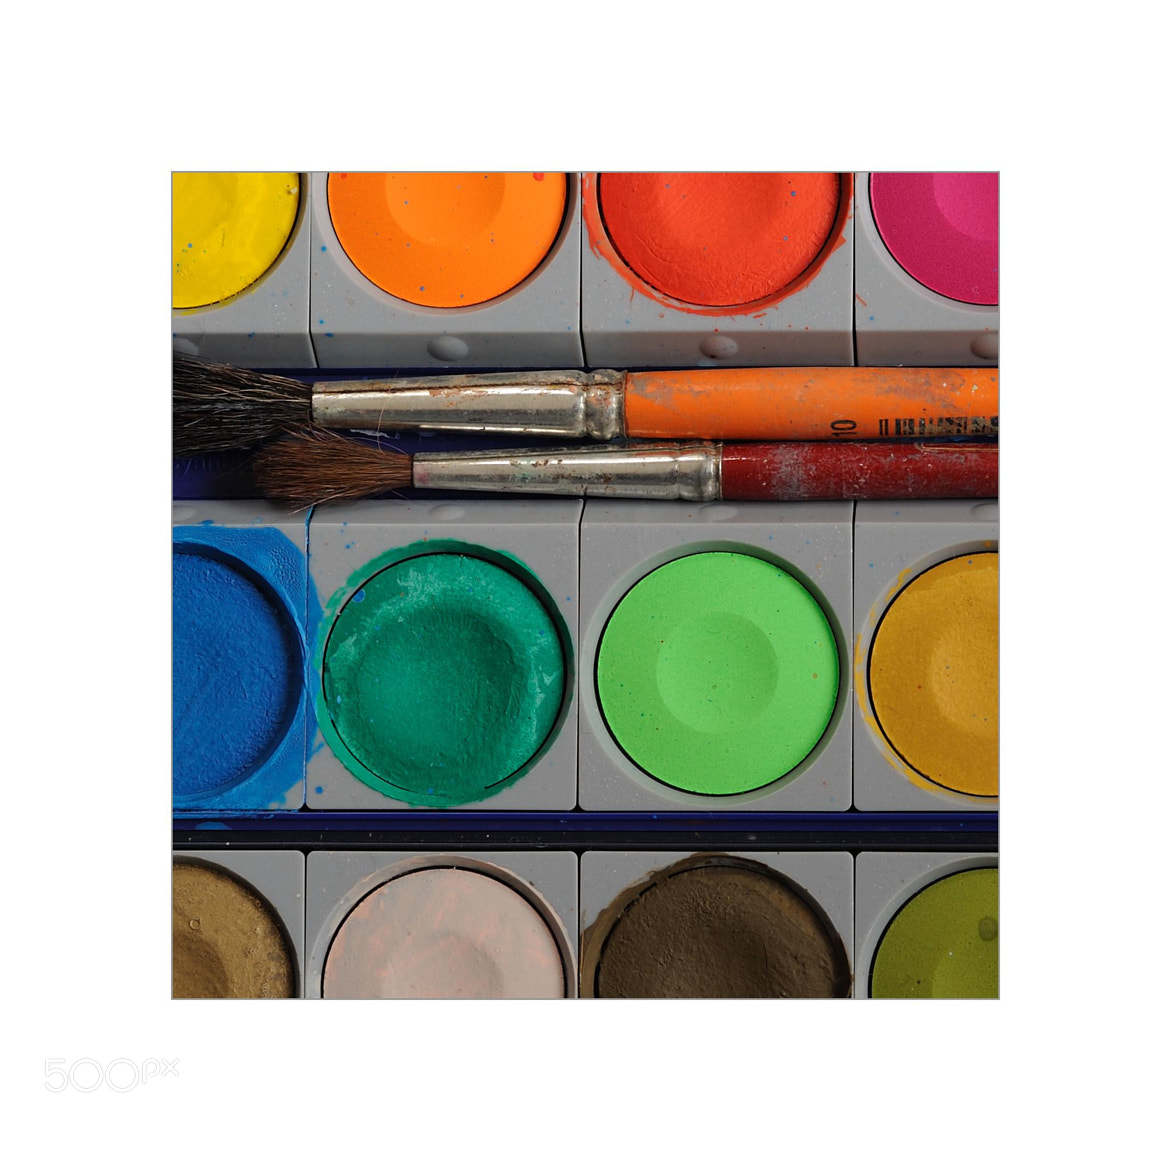 Photograph Paintbox by Andreas Steegmann on 500px